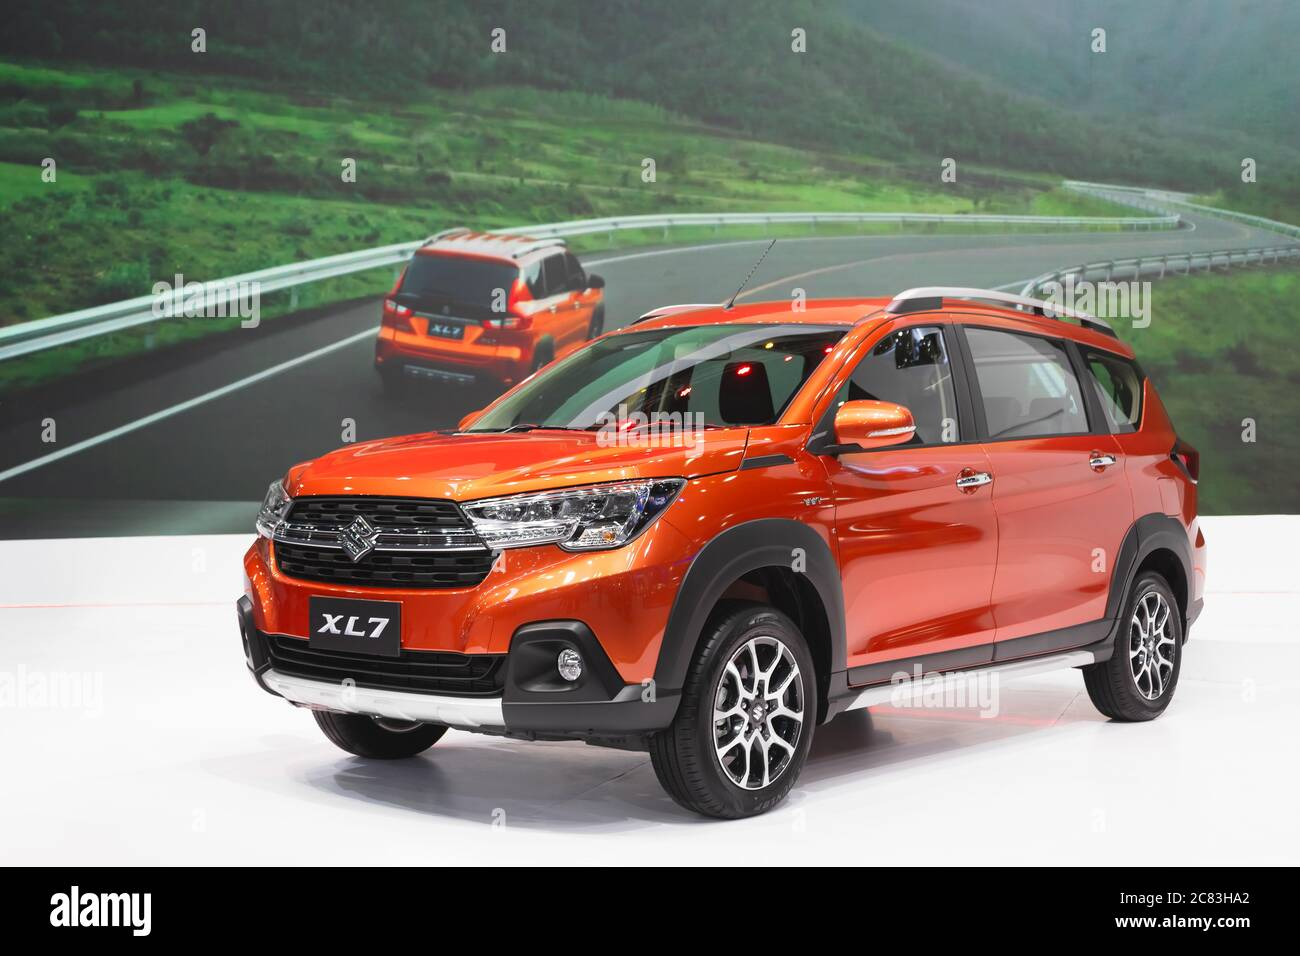 bangkok thailand 2020 july 21 suzuki xl7 displayed at the bangkok international motor show 2020 the xl7 is the seven seats suv style car stock photo alamy https www alamy com bangkok thailand 2020 july 21 suzuki xl7 displayed at the bangkok international motor show 2020 the xl7 is the seven seats suv style car image366414442 html